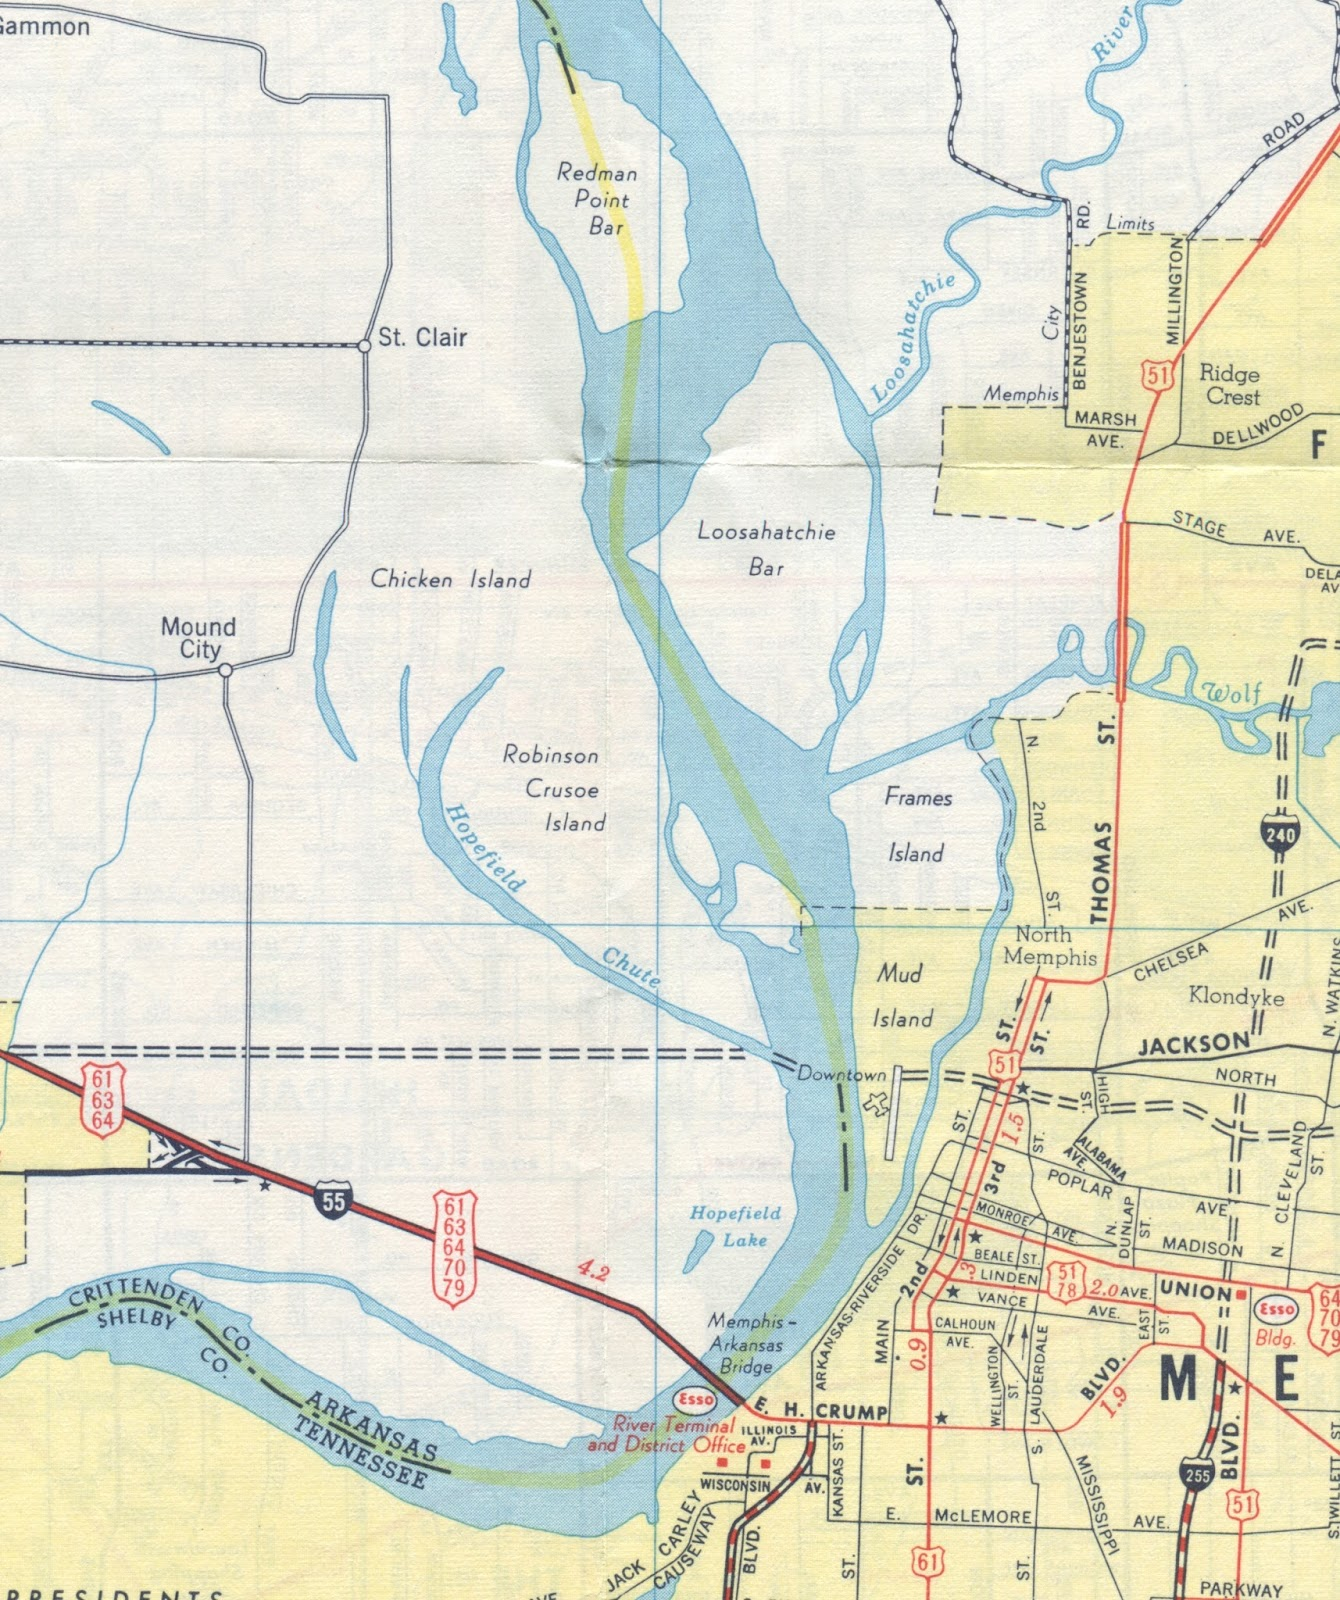 this map from 1964 shows the new wolf river channel which resulted in the wolf river harbor to the south of the channel since it was disconnected by the